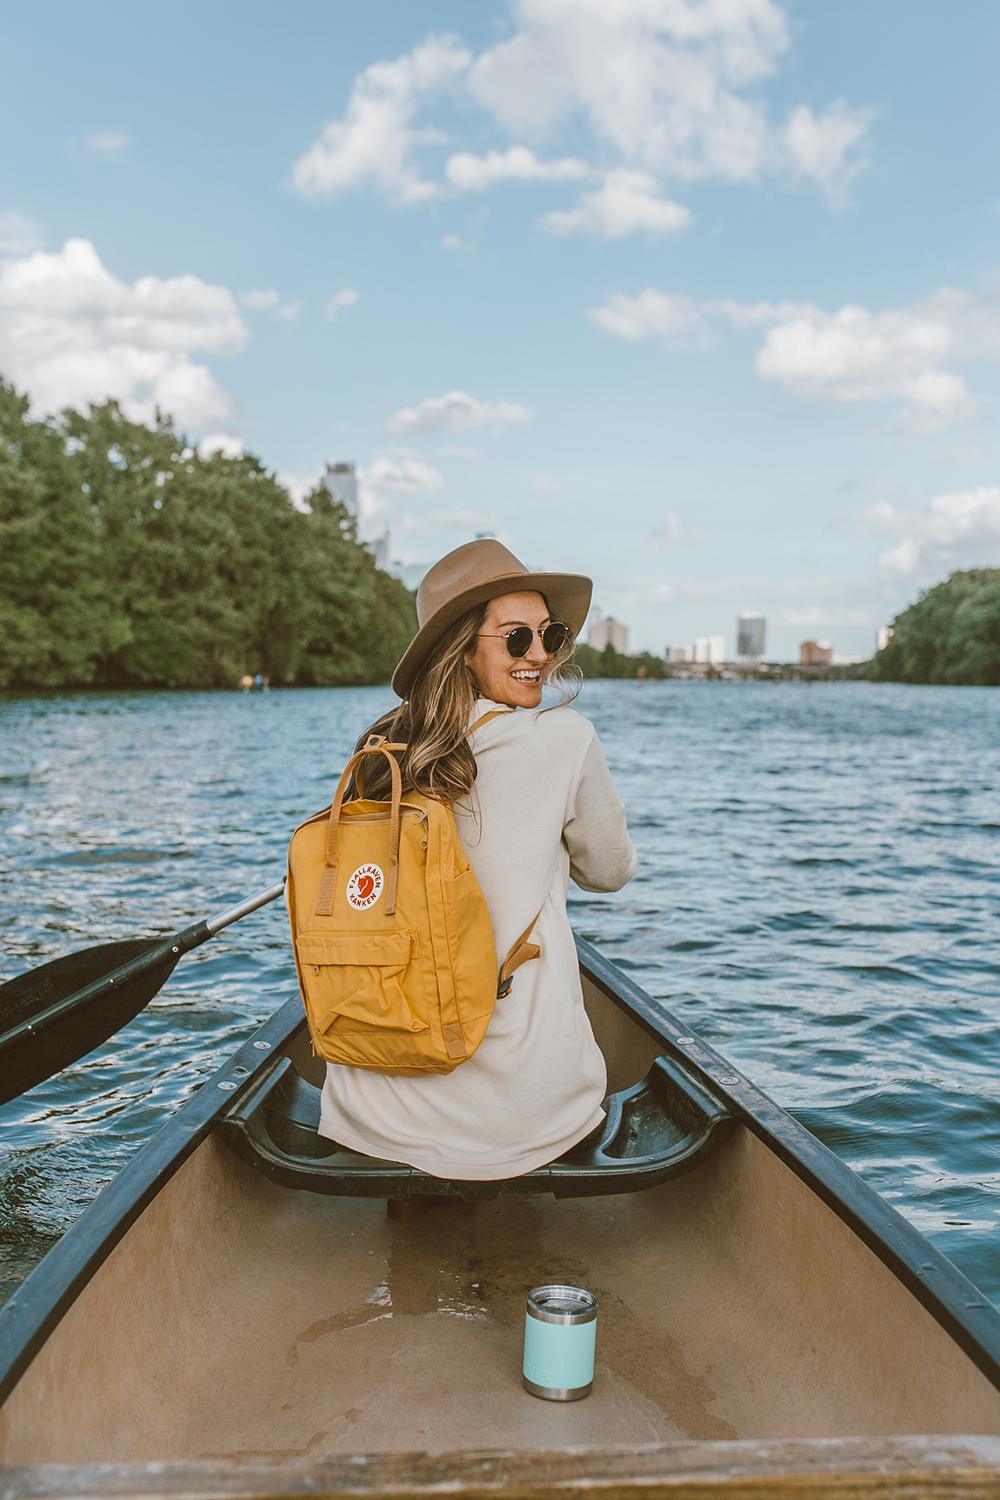 livvyland-blog-olivia-watson-canoe-lady-bird-lake-austin-texas-lifestyle-fashion-blogger-backcountry-patagonia-tunic-yeti-rambler-2